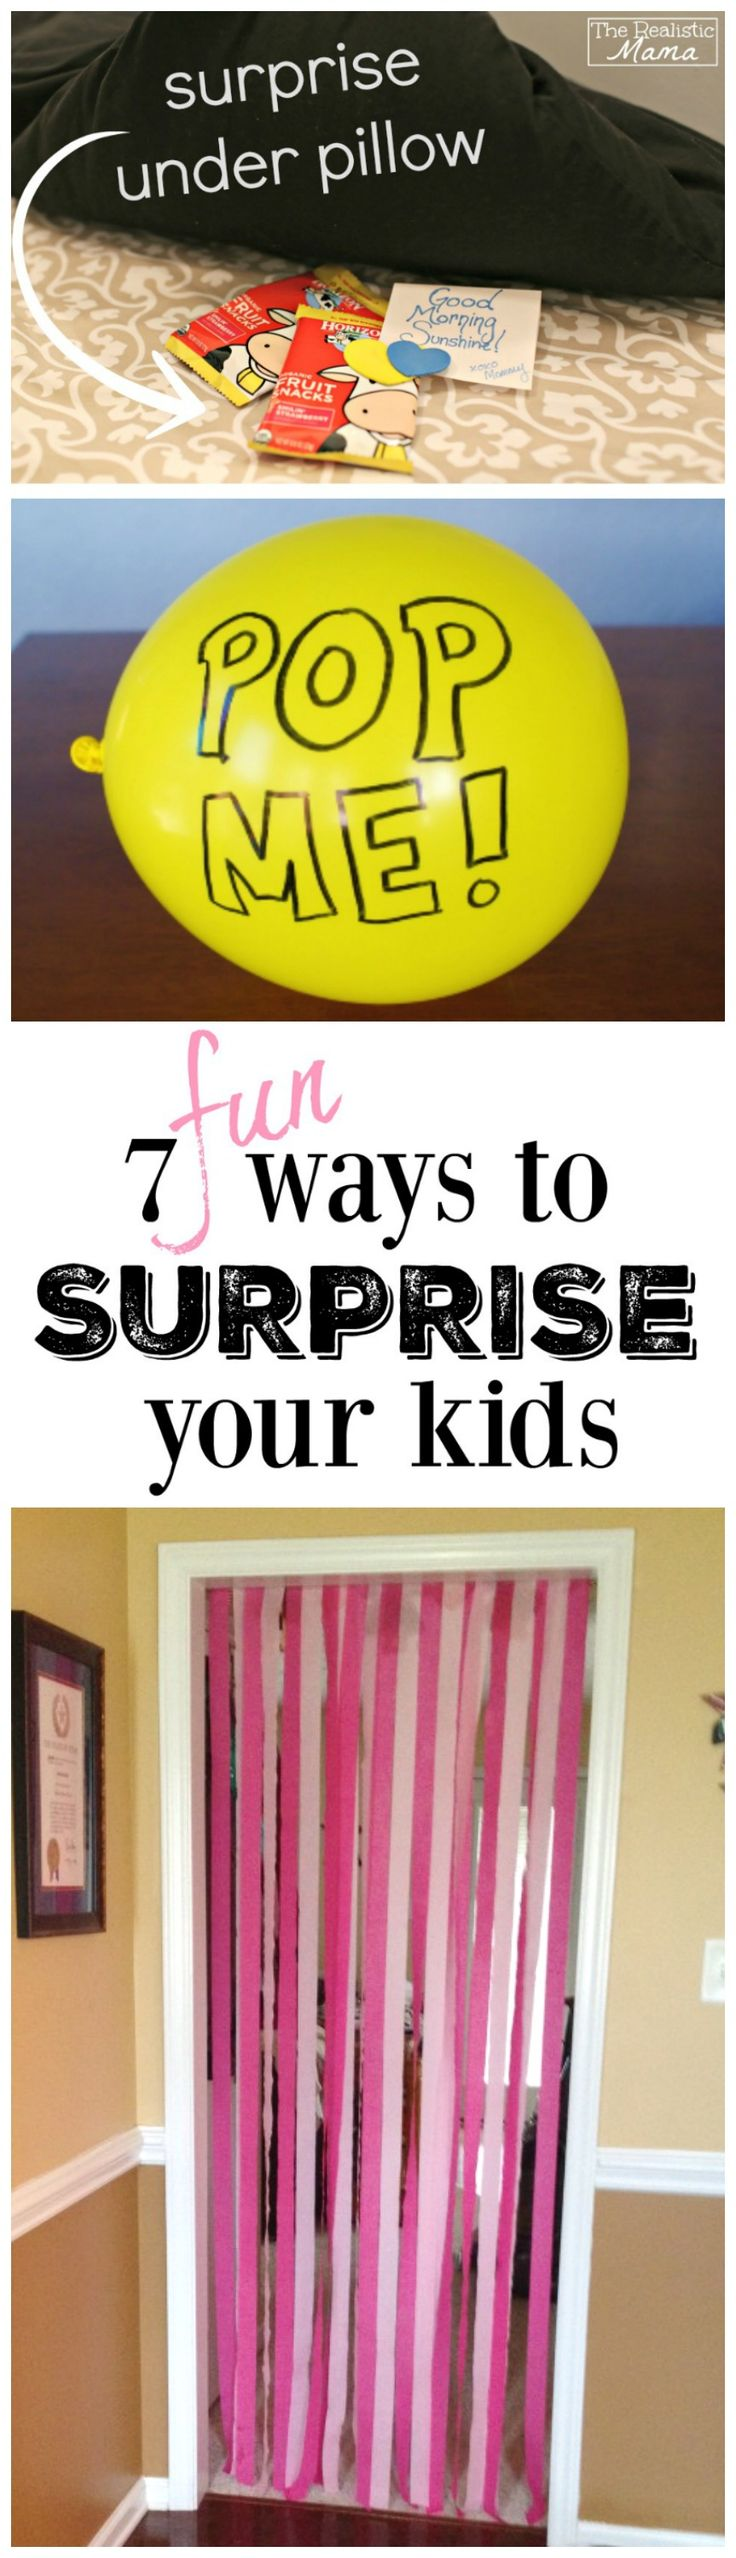 7 IDEAS TO SURPRISE YOUR KIDS - the kids will love all of these, we did #7 this morning and it was a huge hit! #sp